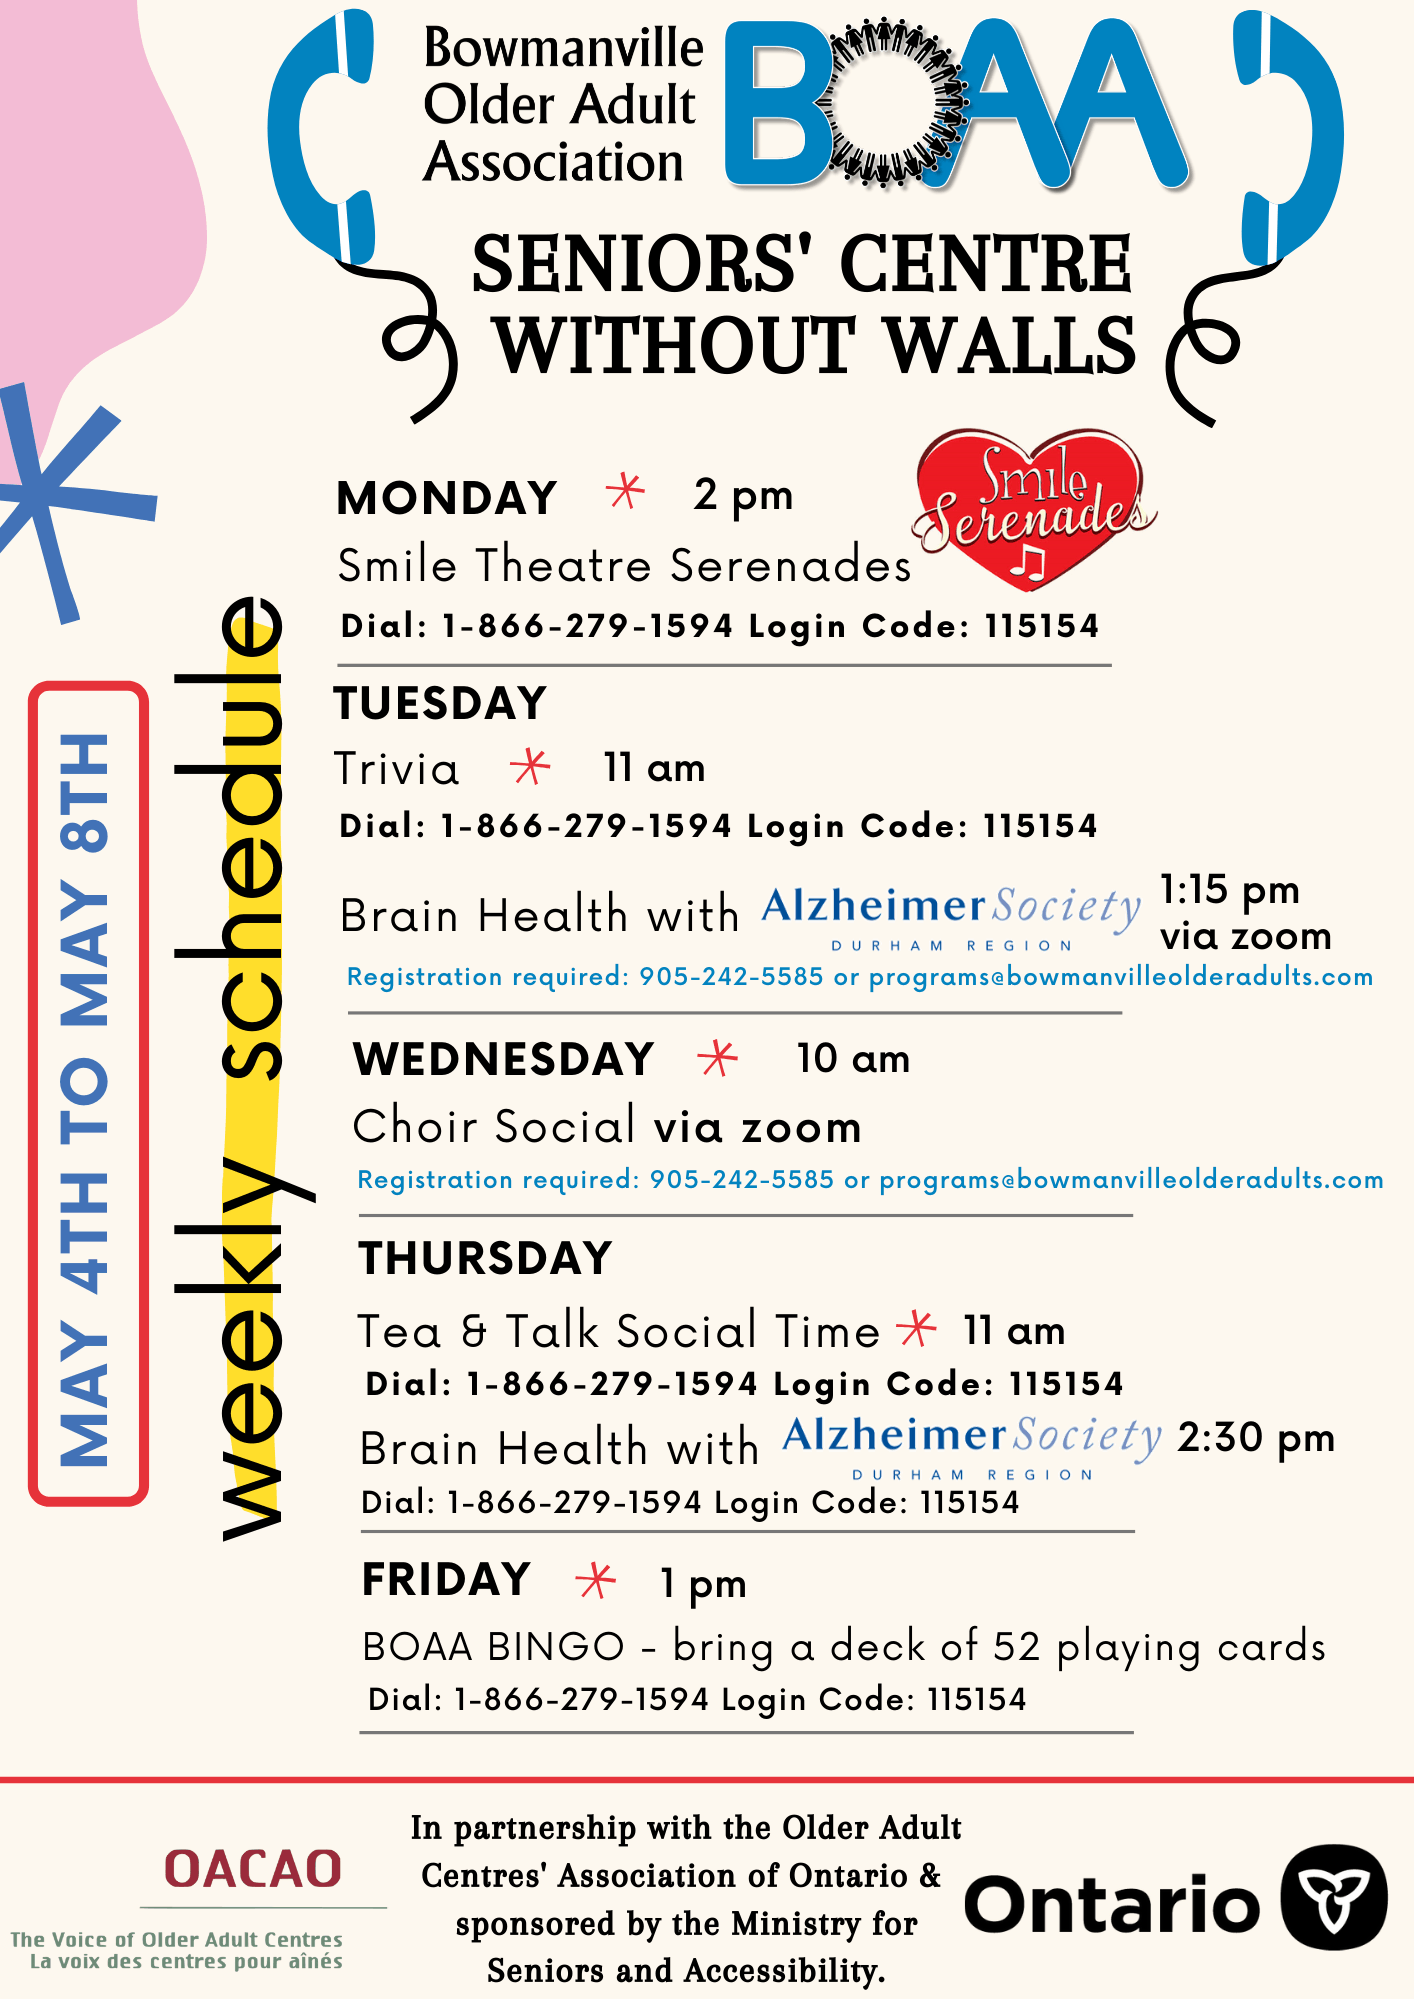 BOAA Seniors' Centre Without Walls – May 4th to May 8th Programming